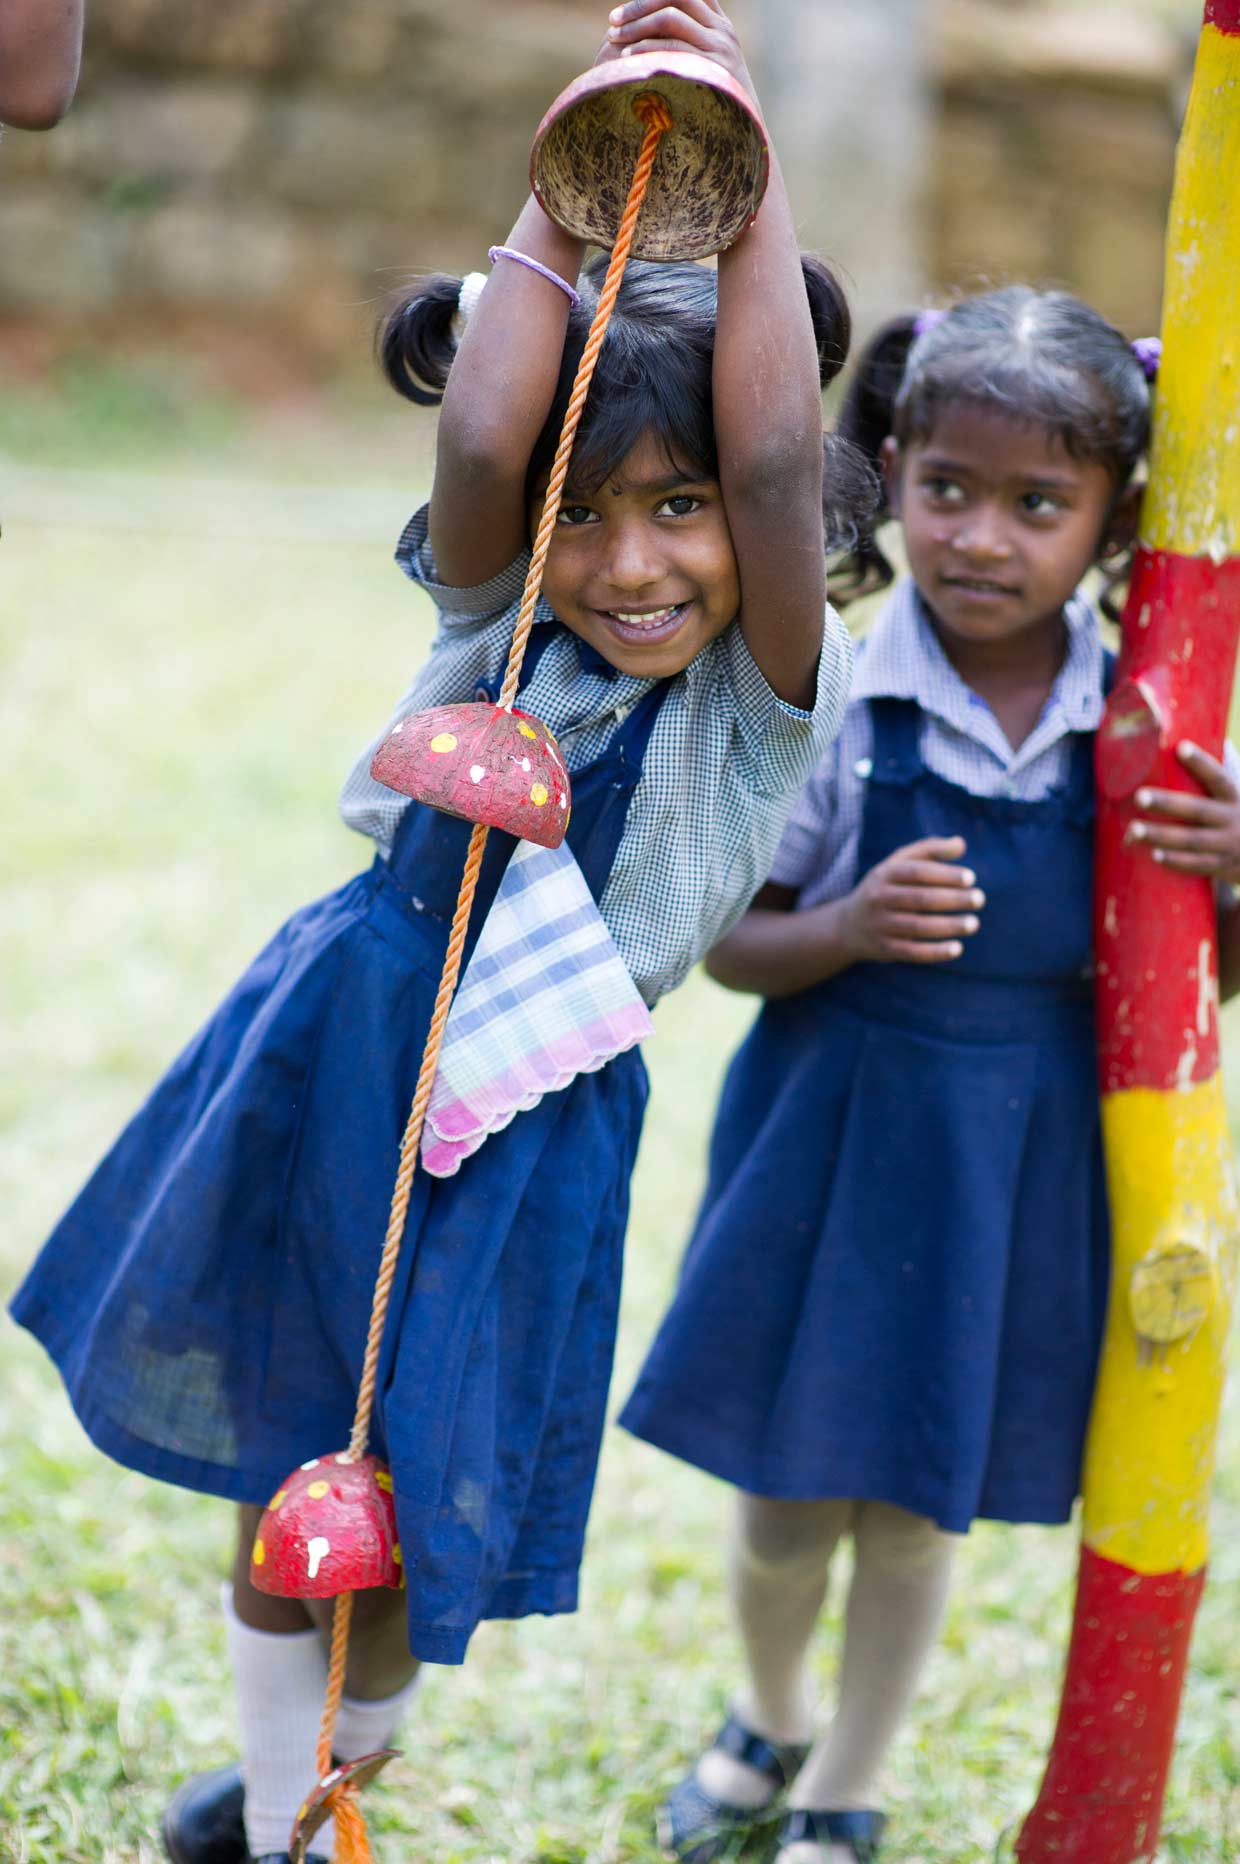 Young children play at one of the many Dilmah sponsored nurseries situated in Dilmah plantations. Education and crèche facilities for children under the age of 5 are provided free of charge by the MJF Charitable Foundation.